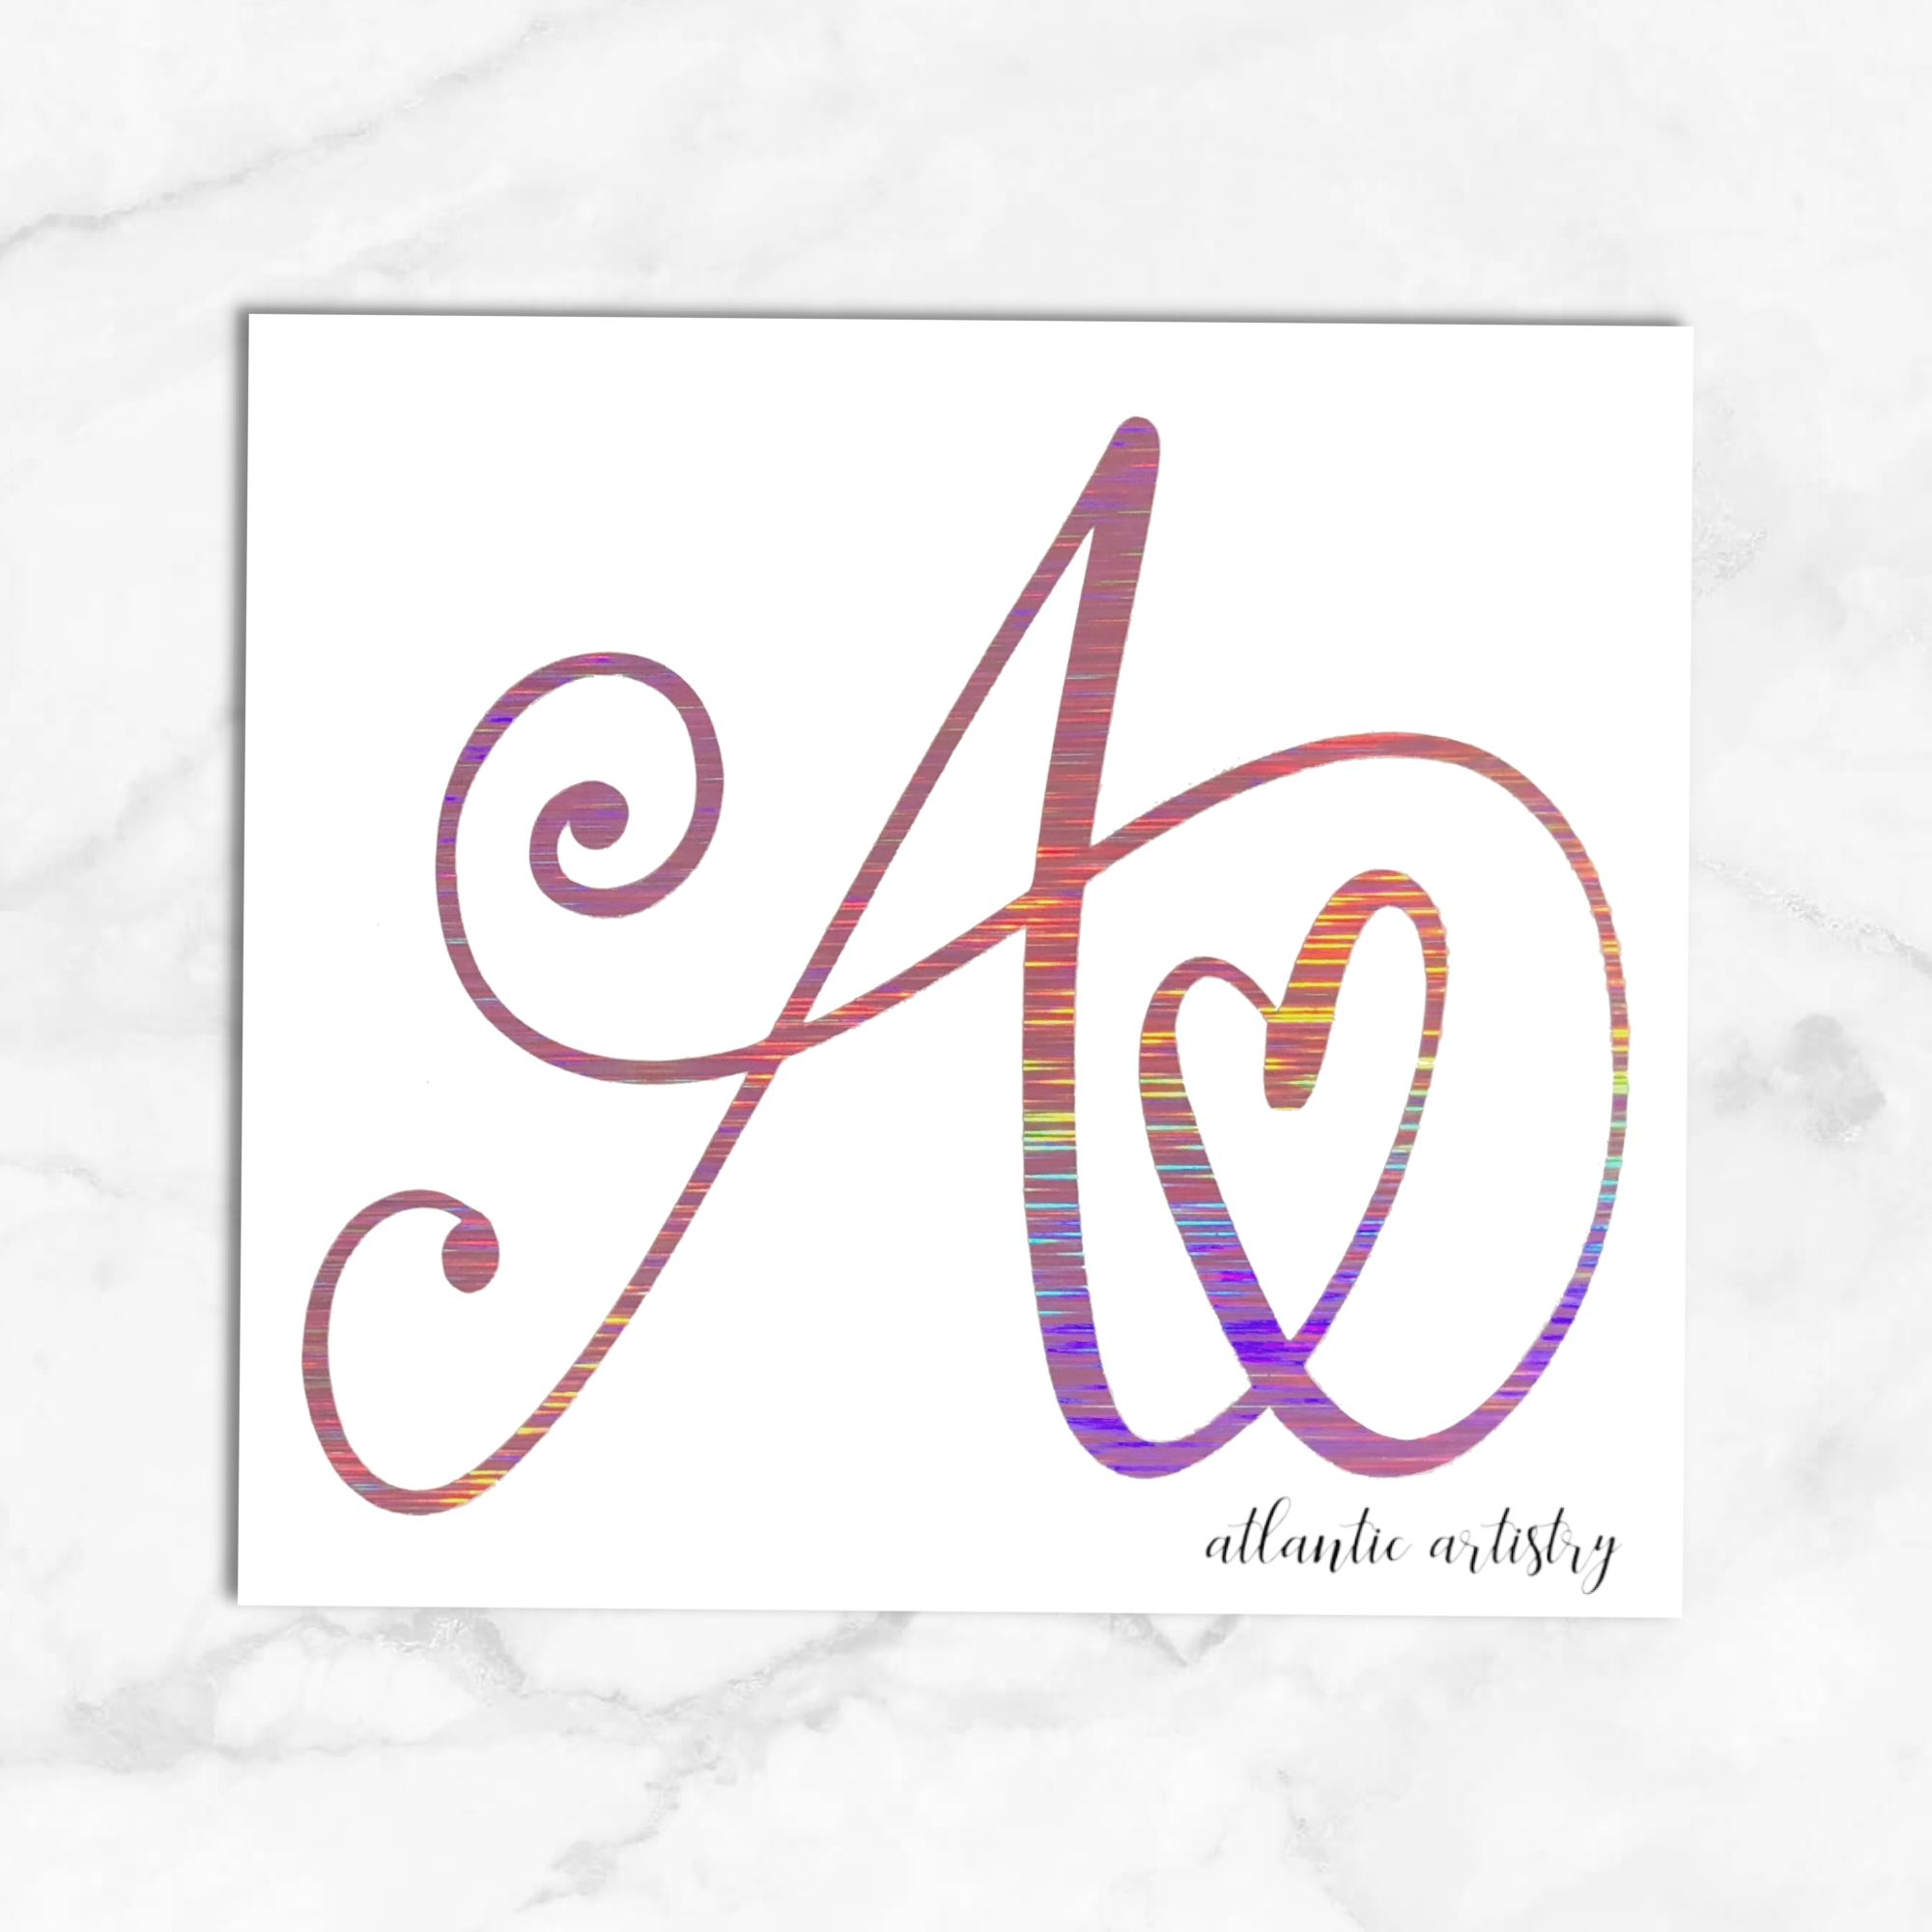 Holographic Heart Letter Decal Initial Sticker Single Letter Decal Holographic Yeti Sticker Decal For Tumbler Sticker For Water Bottle Monogram Decal Initials Sticker Initials Decal [ 2000 x 2000 Pixel ]